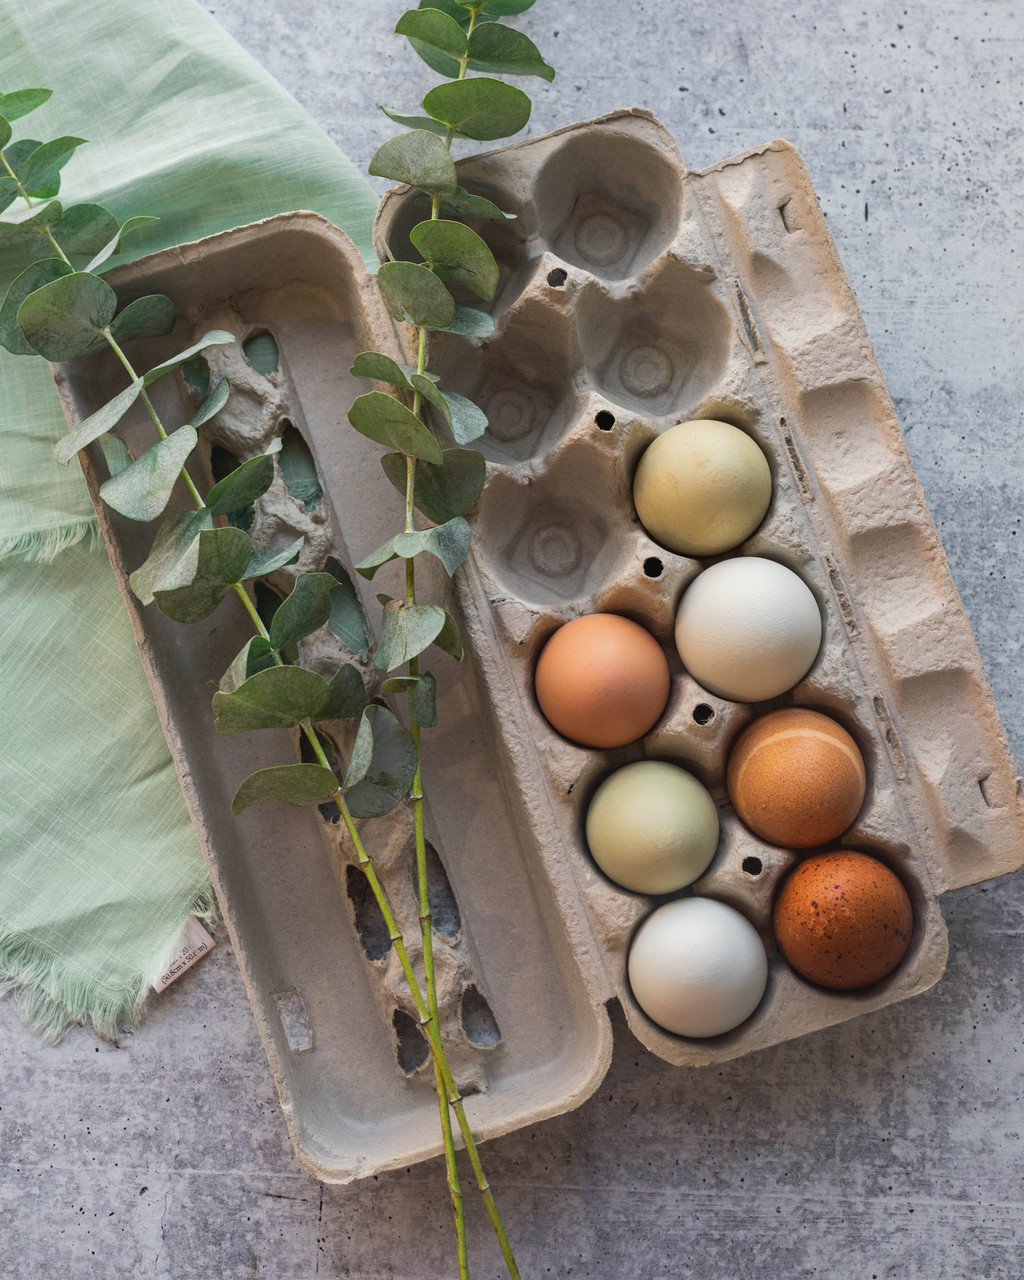 Open TECS Farm Fresh Printed No Grade/Size Paper Pulp Carton with UPC filled with eggs on a table